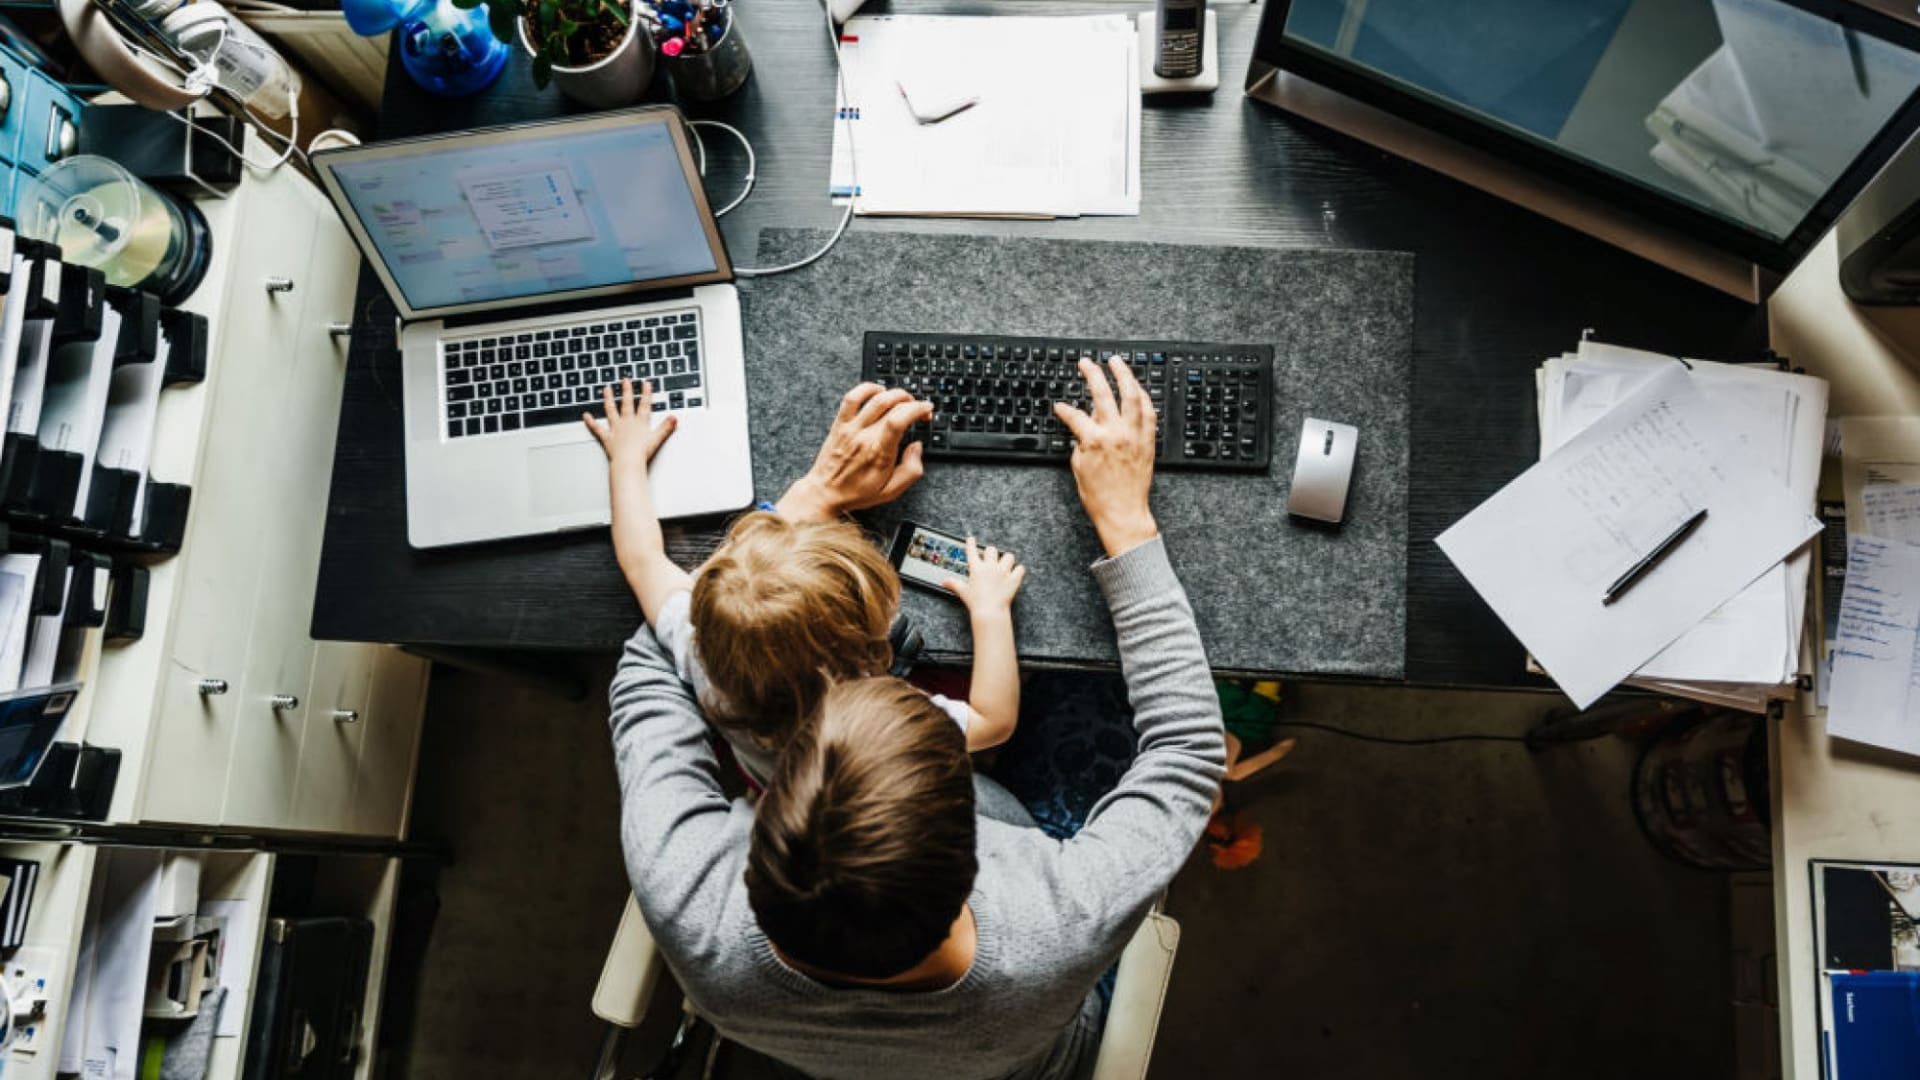 Remote Work Isn't Going Anywhere in 2021. These 9 Tips Can Help Make It Better